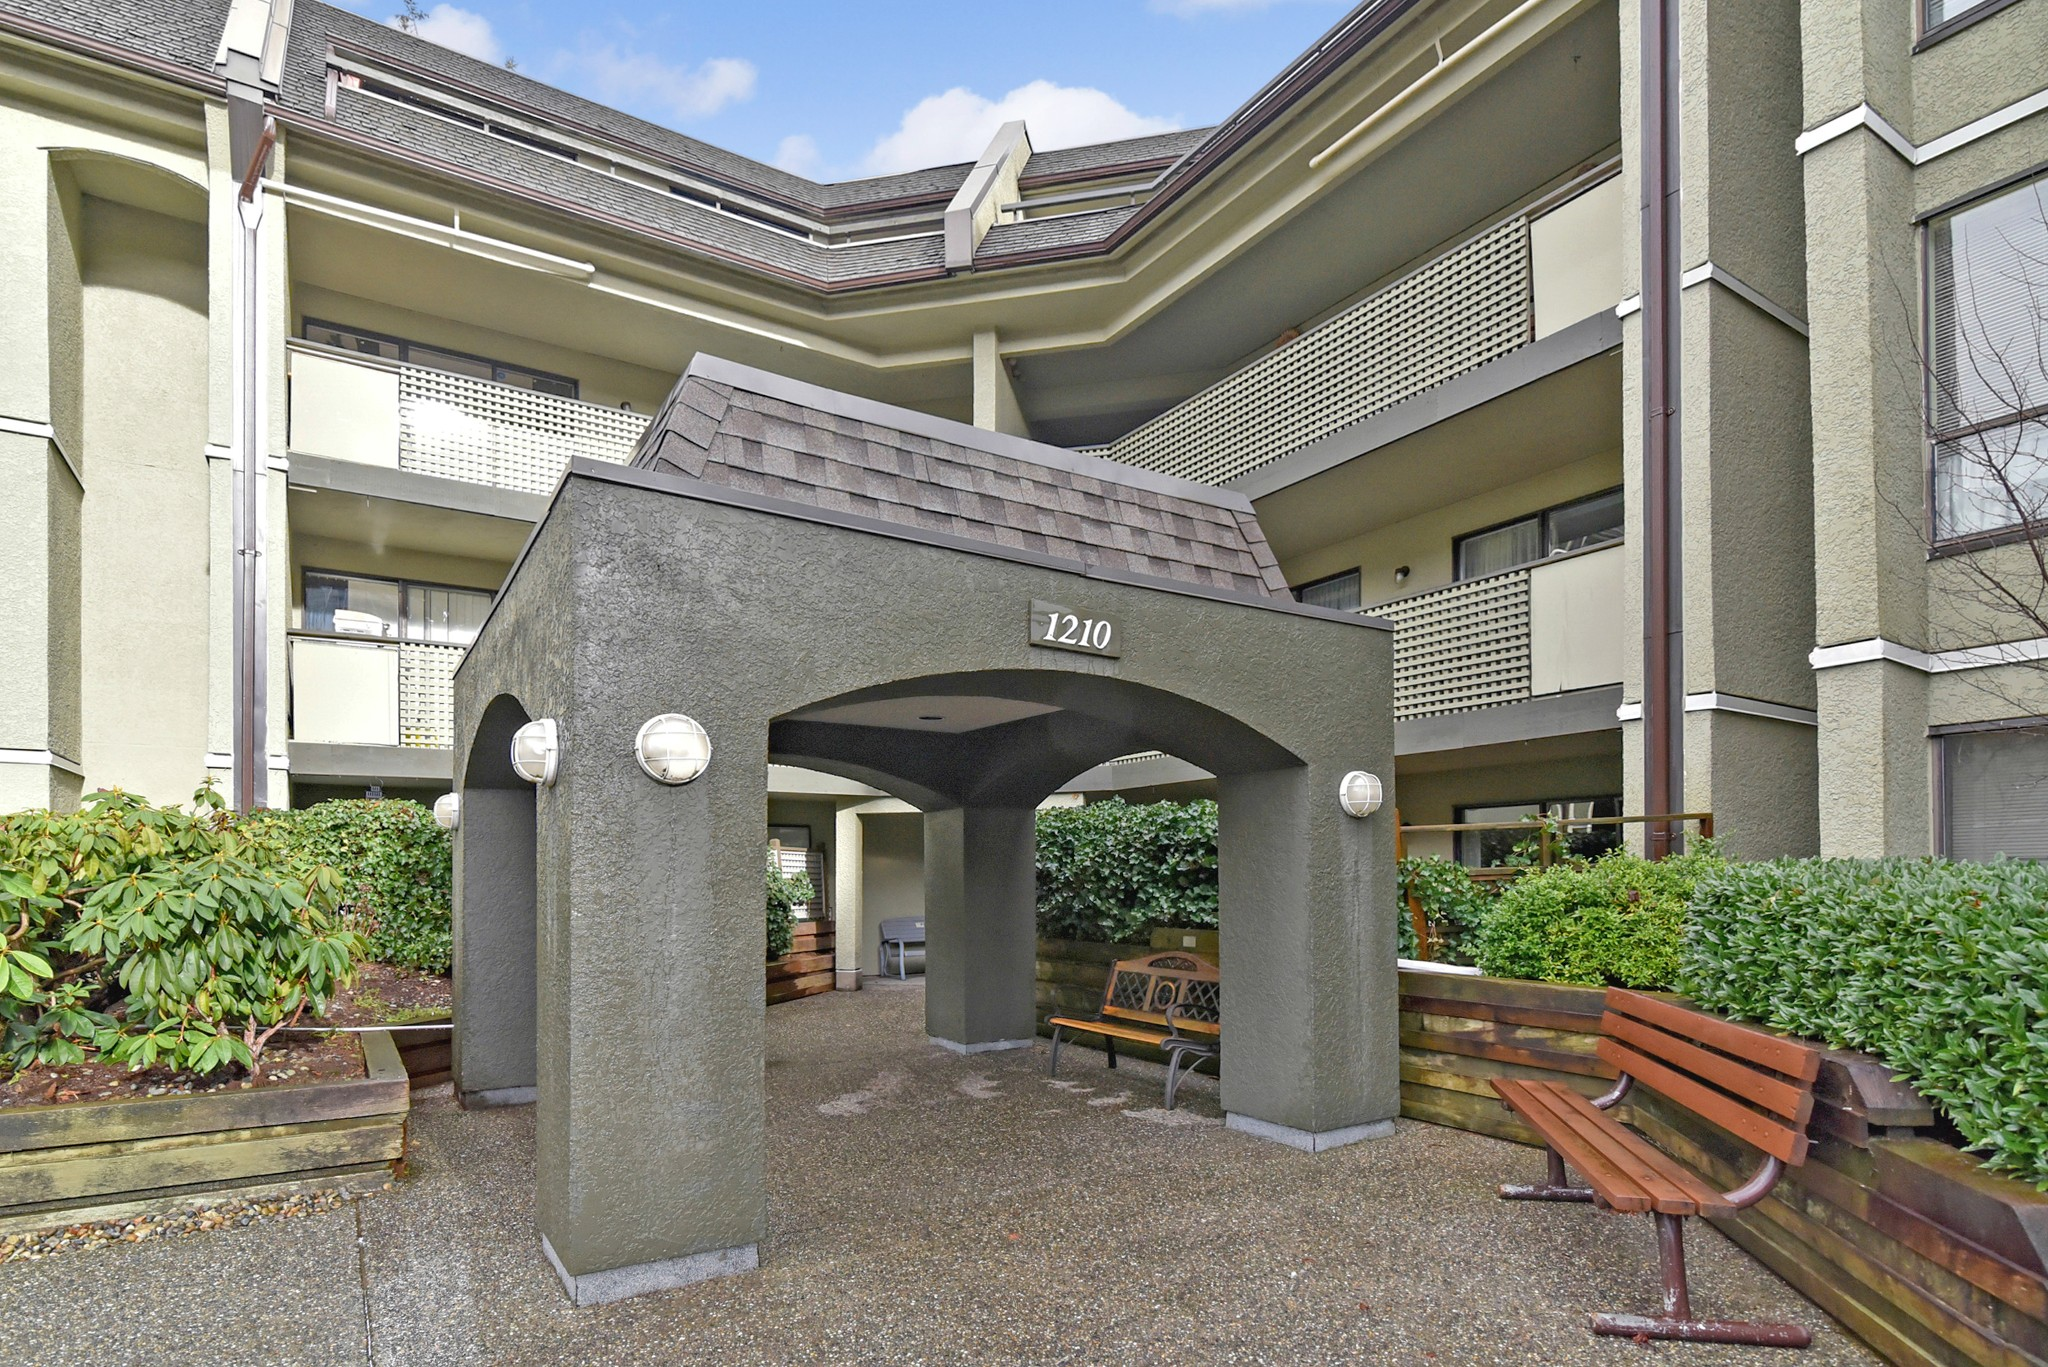 "Main Photo: 205 1210 PACIFIC Street in Coquitlam: North Coquitlam Condo for sale in ""Glenview Manor"" : MLS® # R2235055"